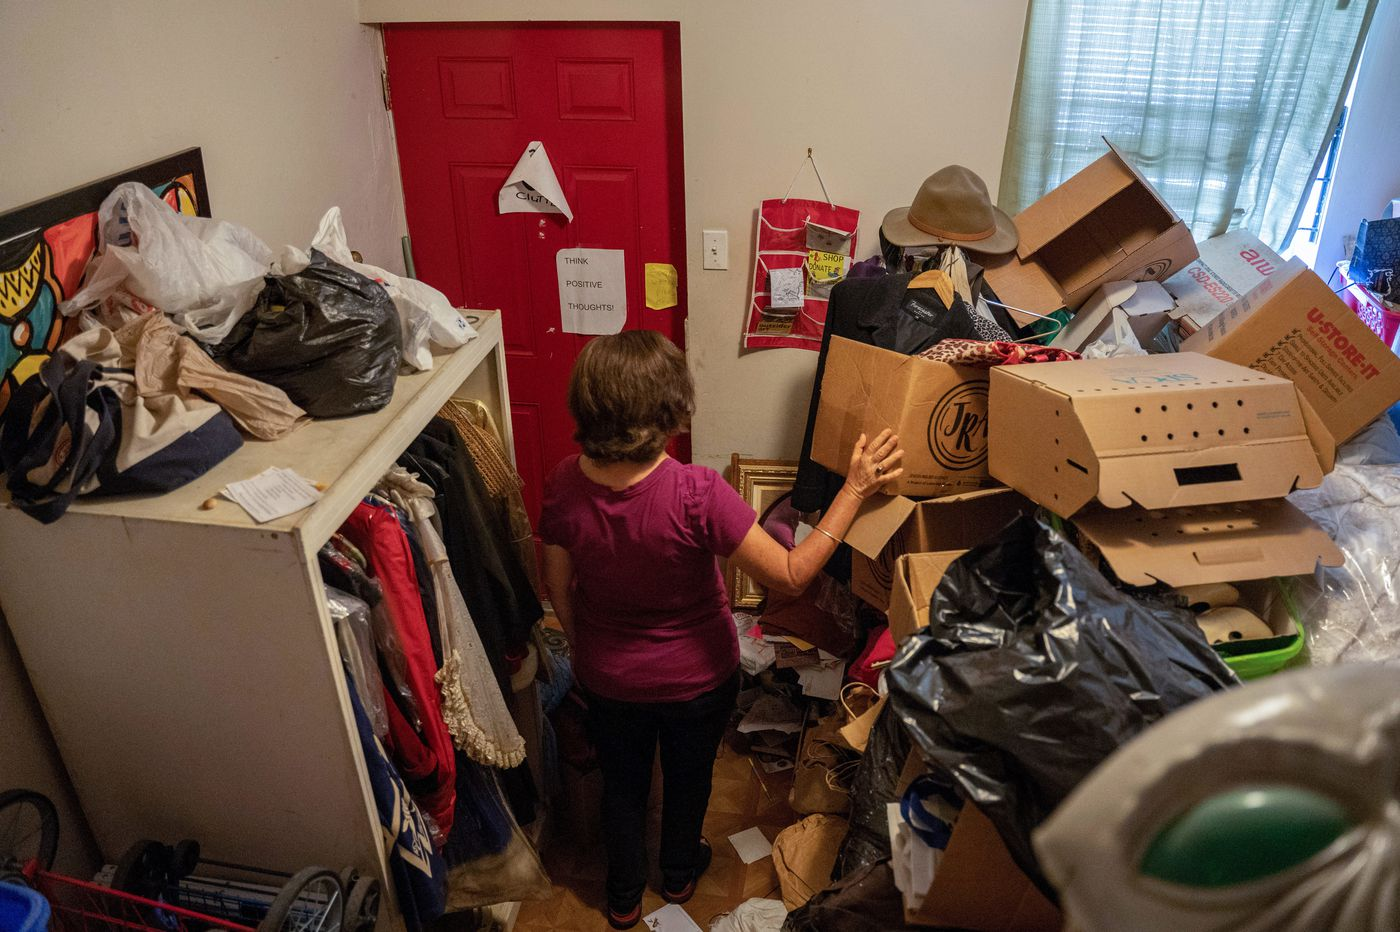 'They're going to judge me': Hoarders confess why it gets worse with age